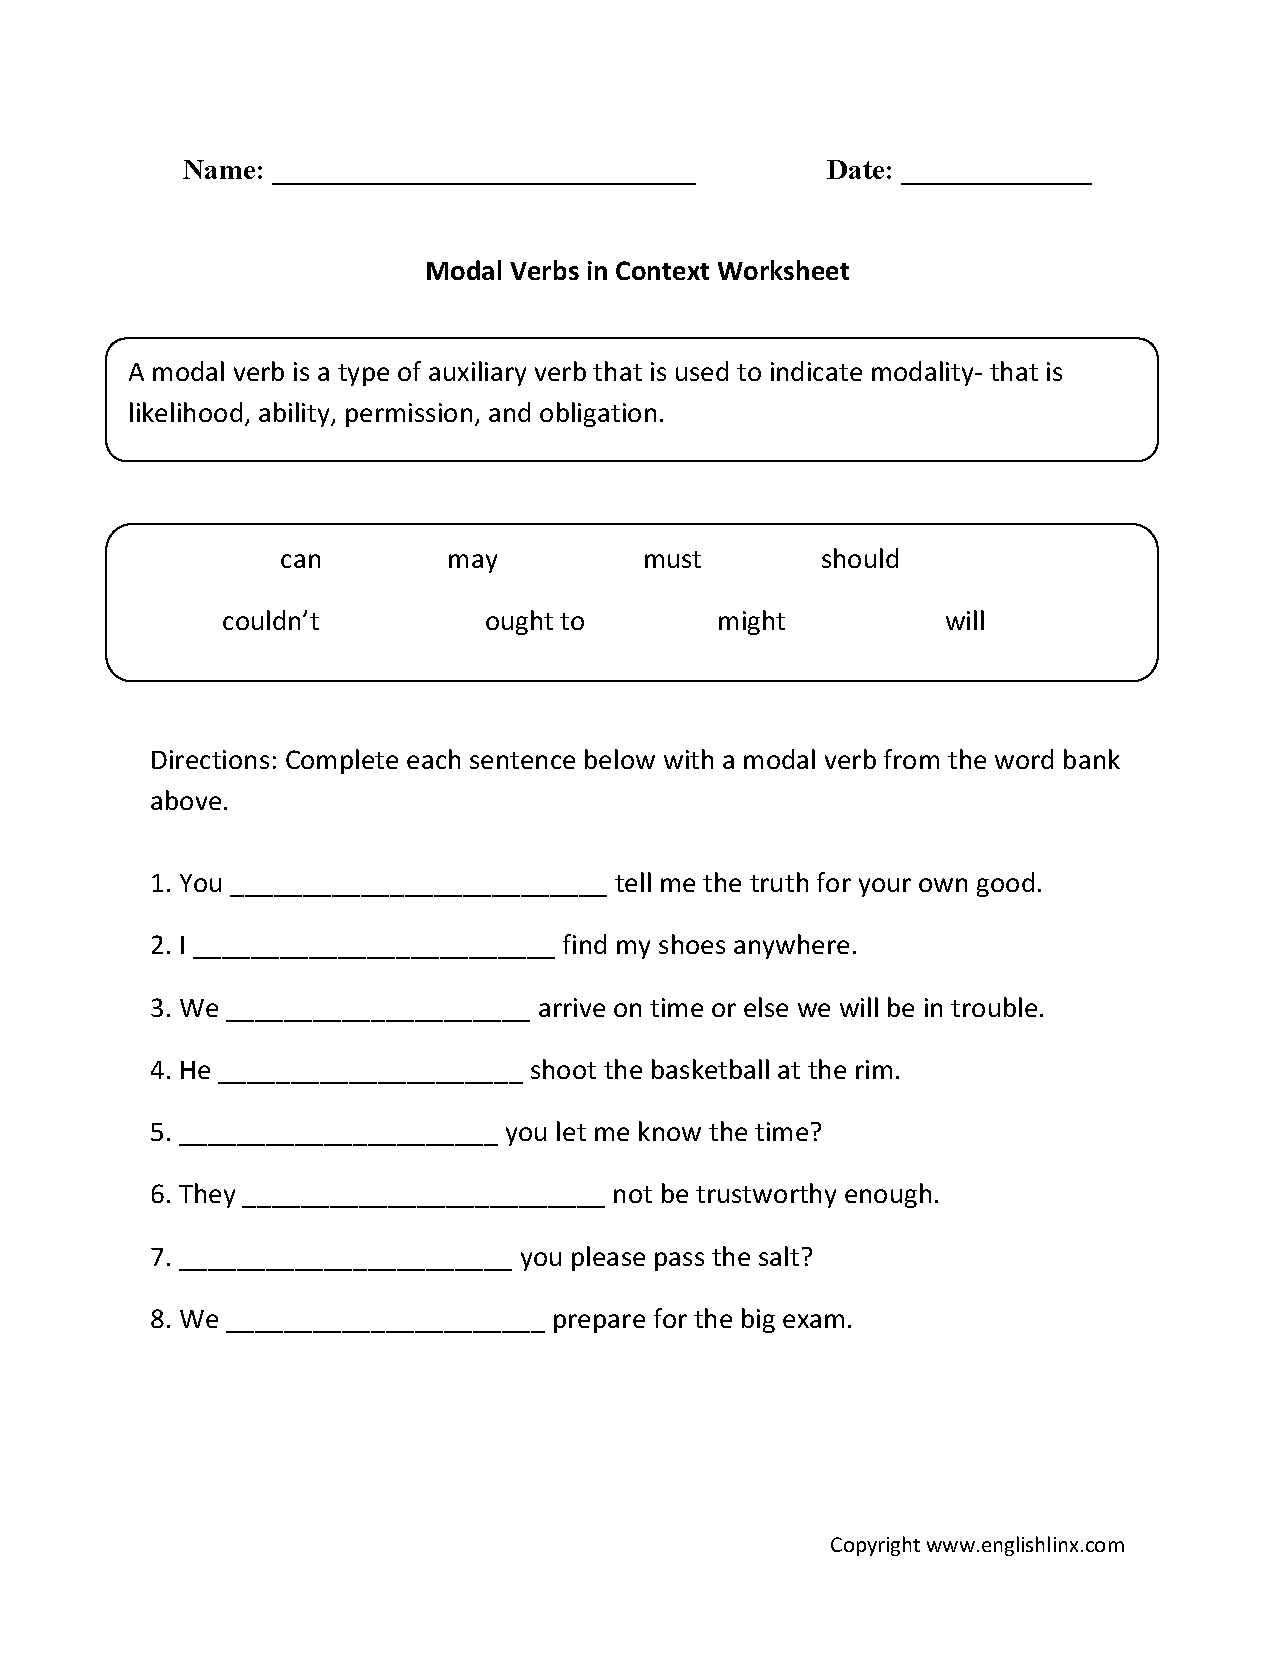 Aldiablosus  Outstanding Worksheet On Verb  Coffemix With Exciting Englishlinxcom  Verbs Worksheets With Cool Sentence Writing Worksheets First Grade Also Greater Smaller Number Worksheets In Addition Adverb Clauses Worksheets And Counting On Worksheets For Kindergarten As Well As English Comprehension Worksheets Ks Additionally Kindergarten Addition Worksheets Free Printable From Coffemixcom With Aldiablosus  Exciting Worksheet On Verb  Coffemix With Cool Englishlinxcom  Verbs Worksheets And Outstanding Sentence Writing Worksheets First Grade Also Greater Smaller Number Worksheets In Addition Adverb Clauses Worksheets From Coffemixcom